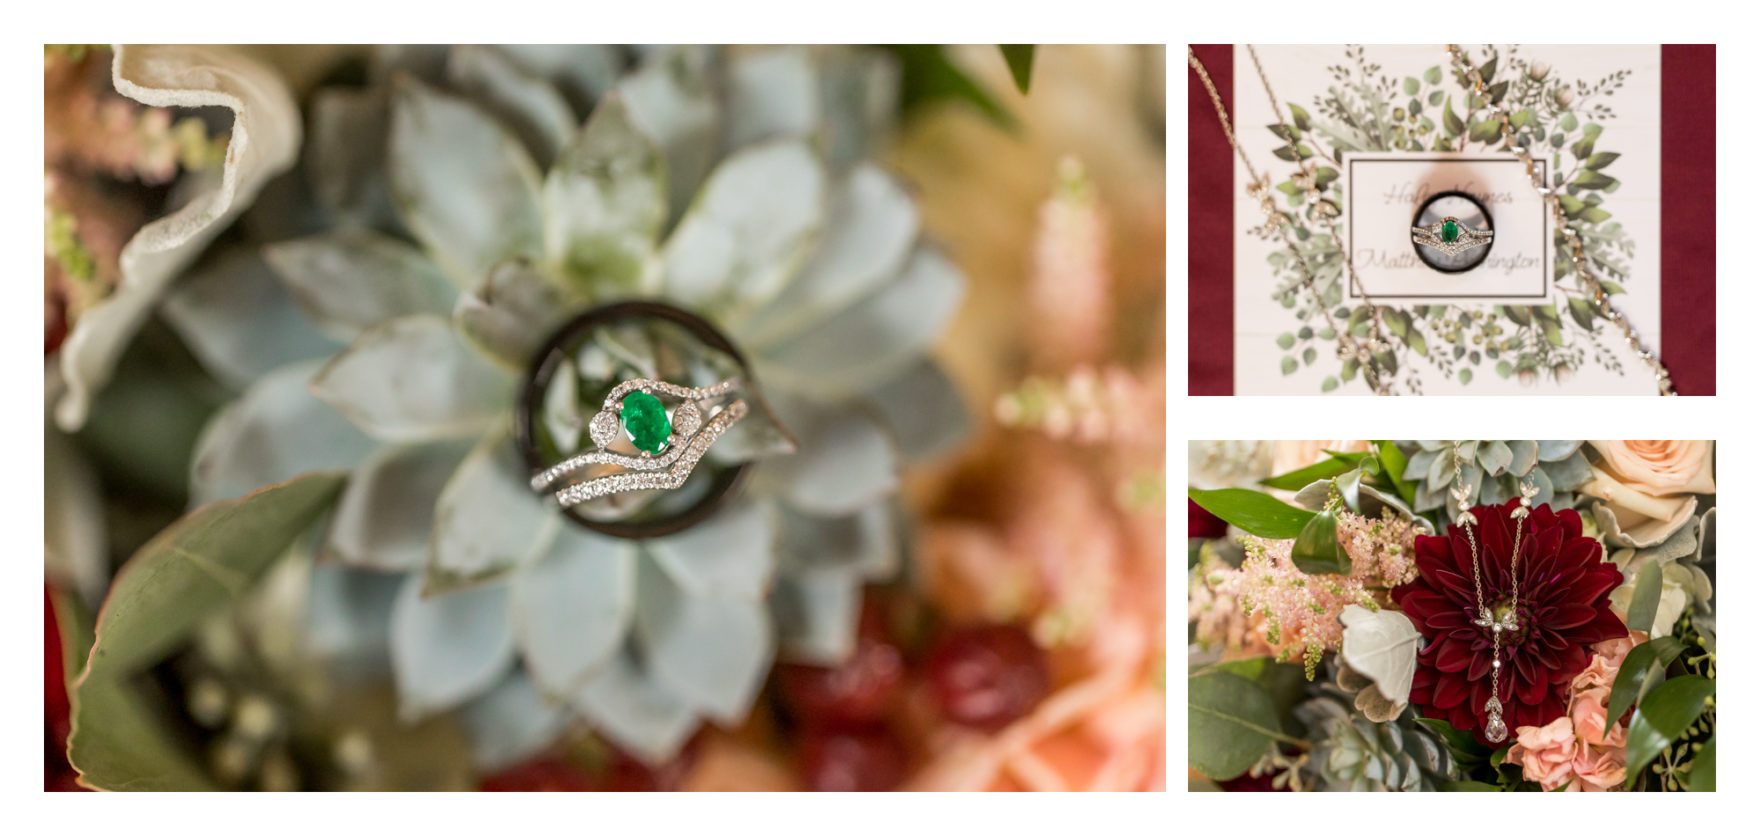 Frederick Wedding Photographer, Frederick Wedding, Ceresville Mansion Wedding, Fall Wedding, Burgundy Wedding, Outdoor Wedding, Military Wedding, Marine Wedding,  Emerald Riing, Emerald Engagement Ring, Emerald Wedding Ring